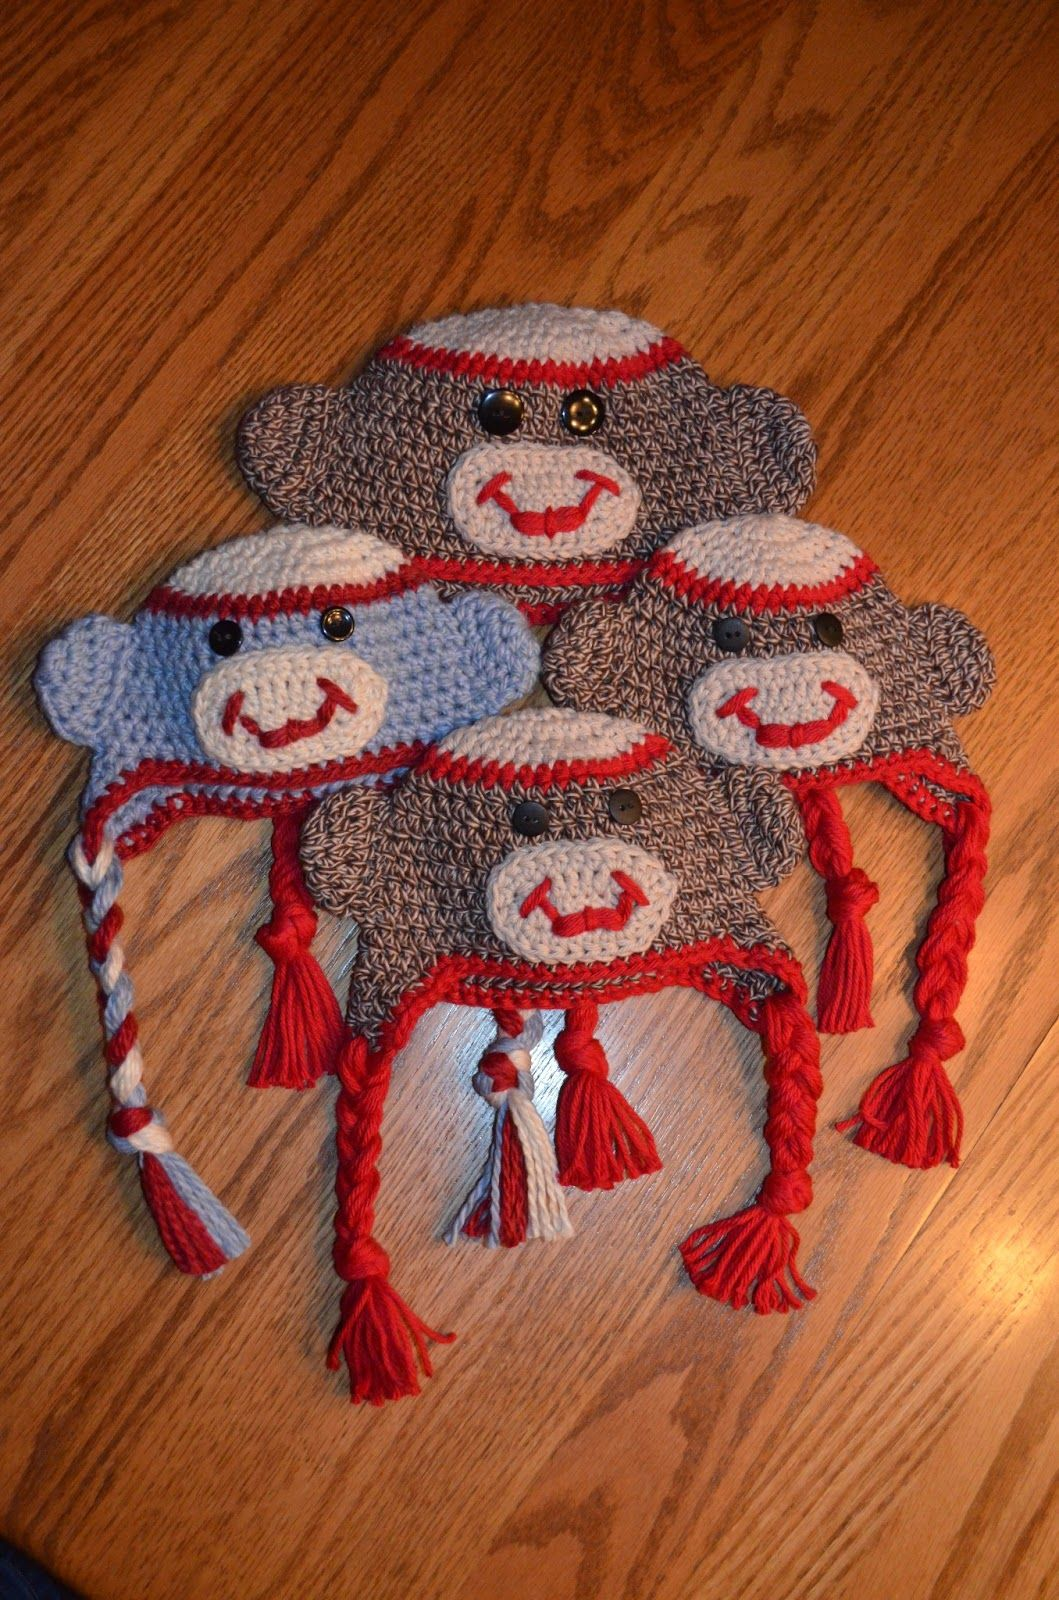 Free Crochet Patterns: Free Crochet Patterns: Baby Hats and Beanies ...